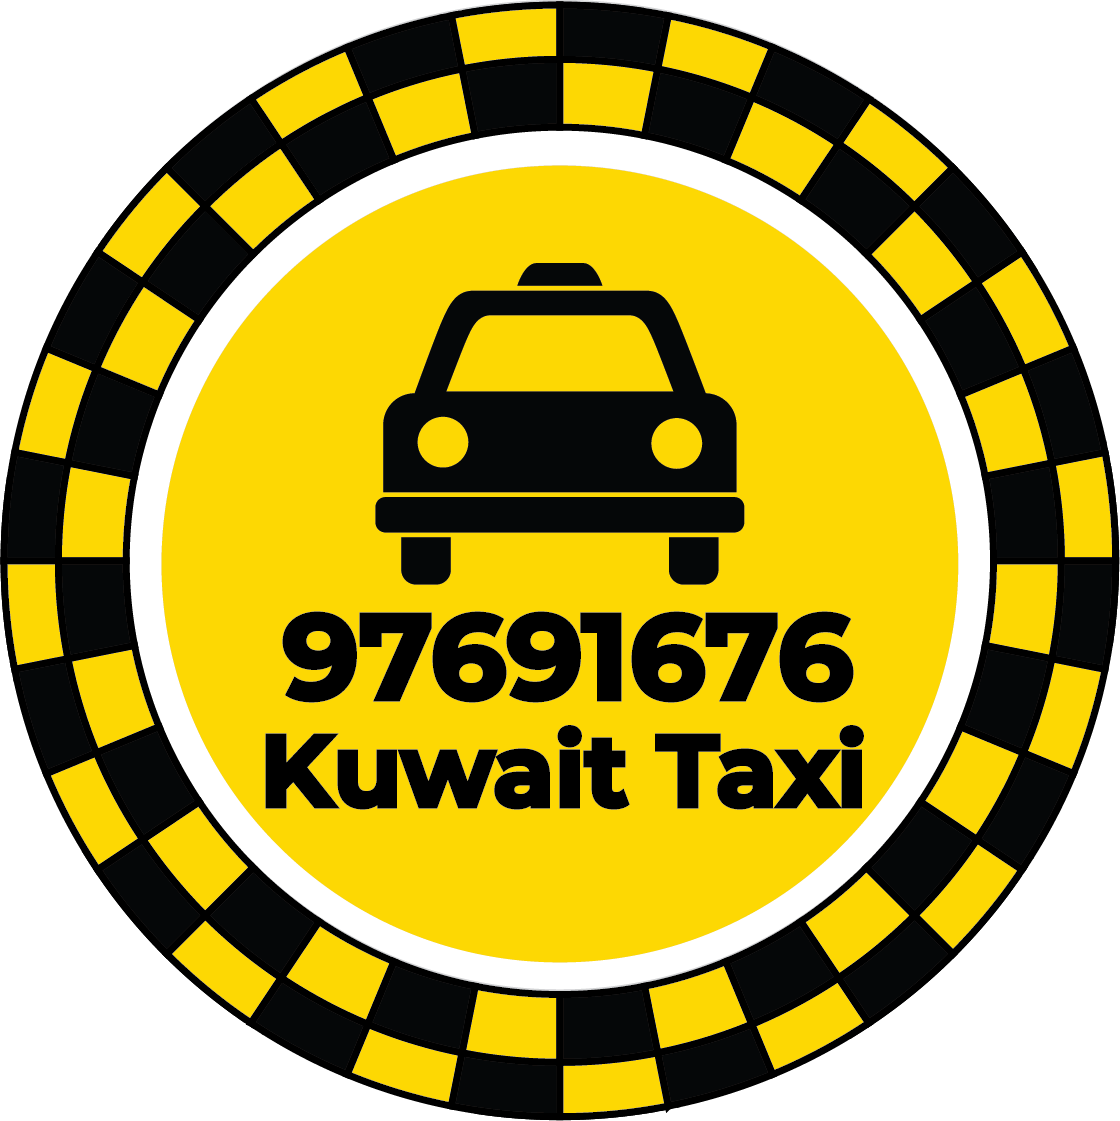 Taxicab in Kuwait